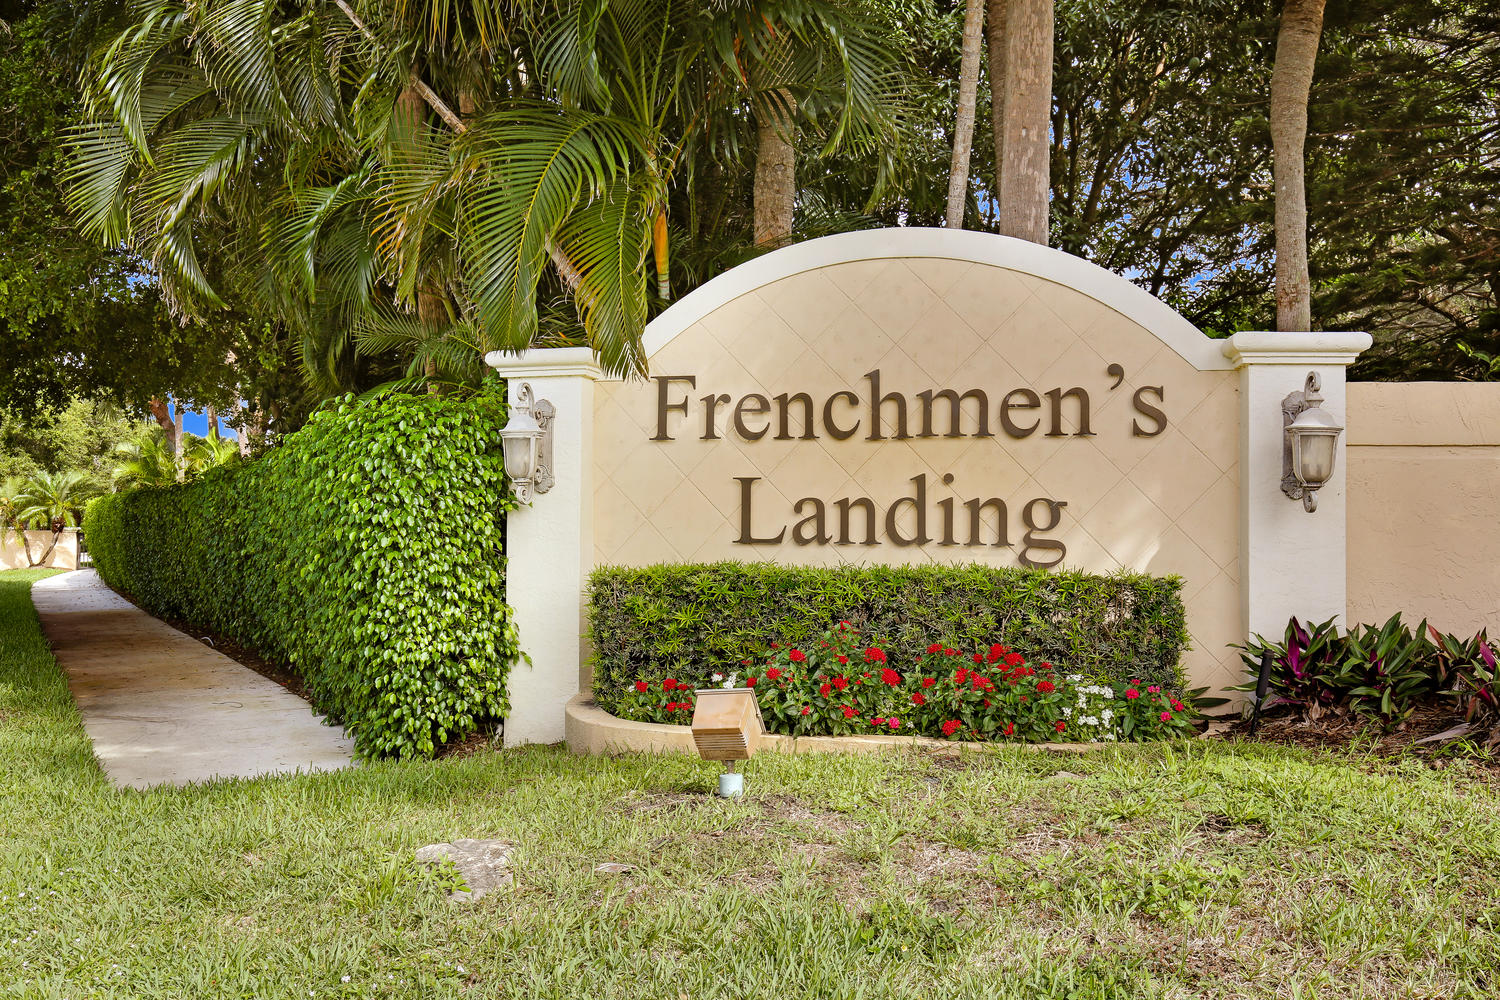 Frenchmen\'s Landing Homes for Sale & Real Estate